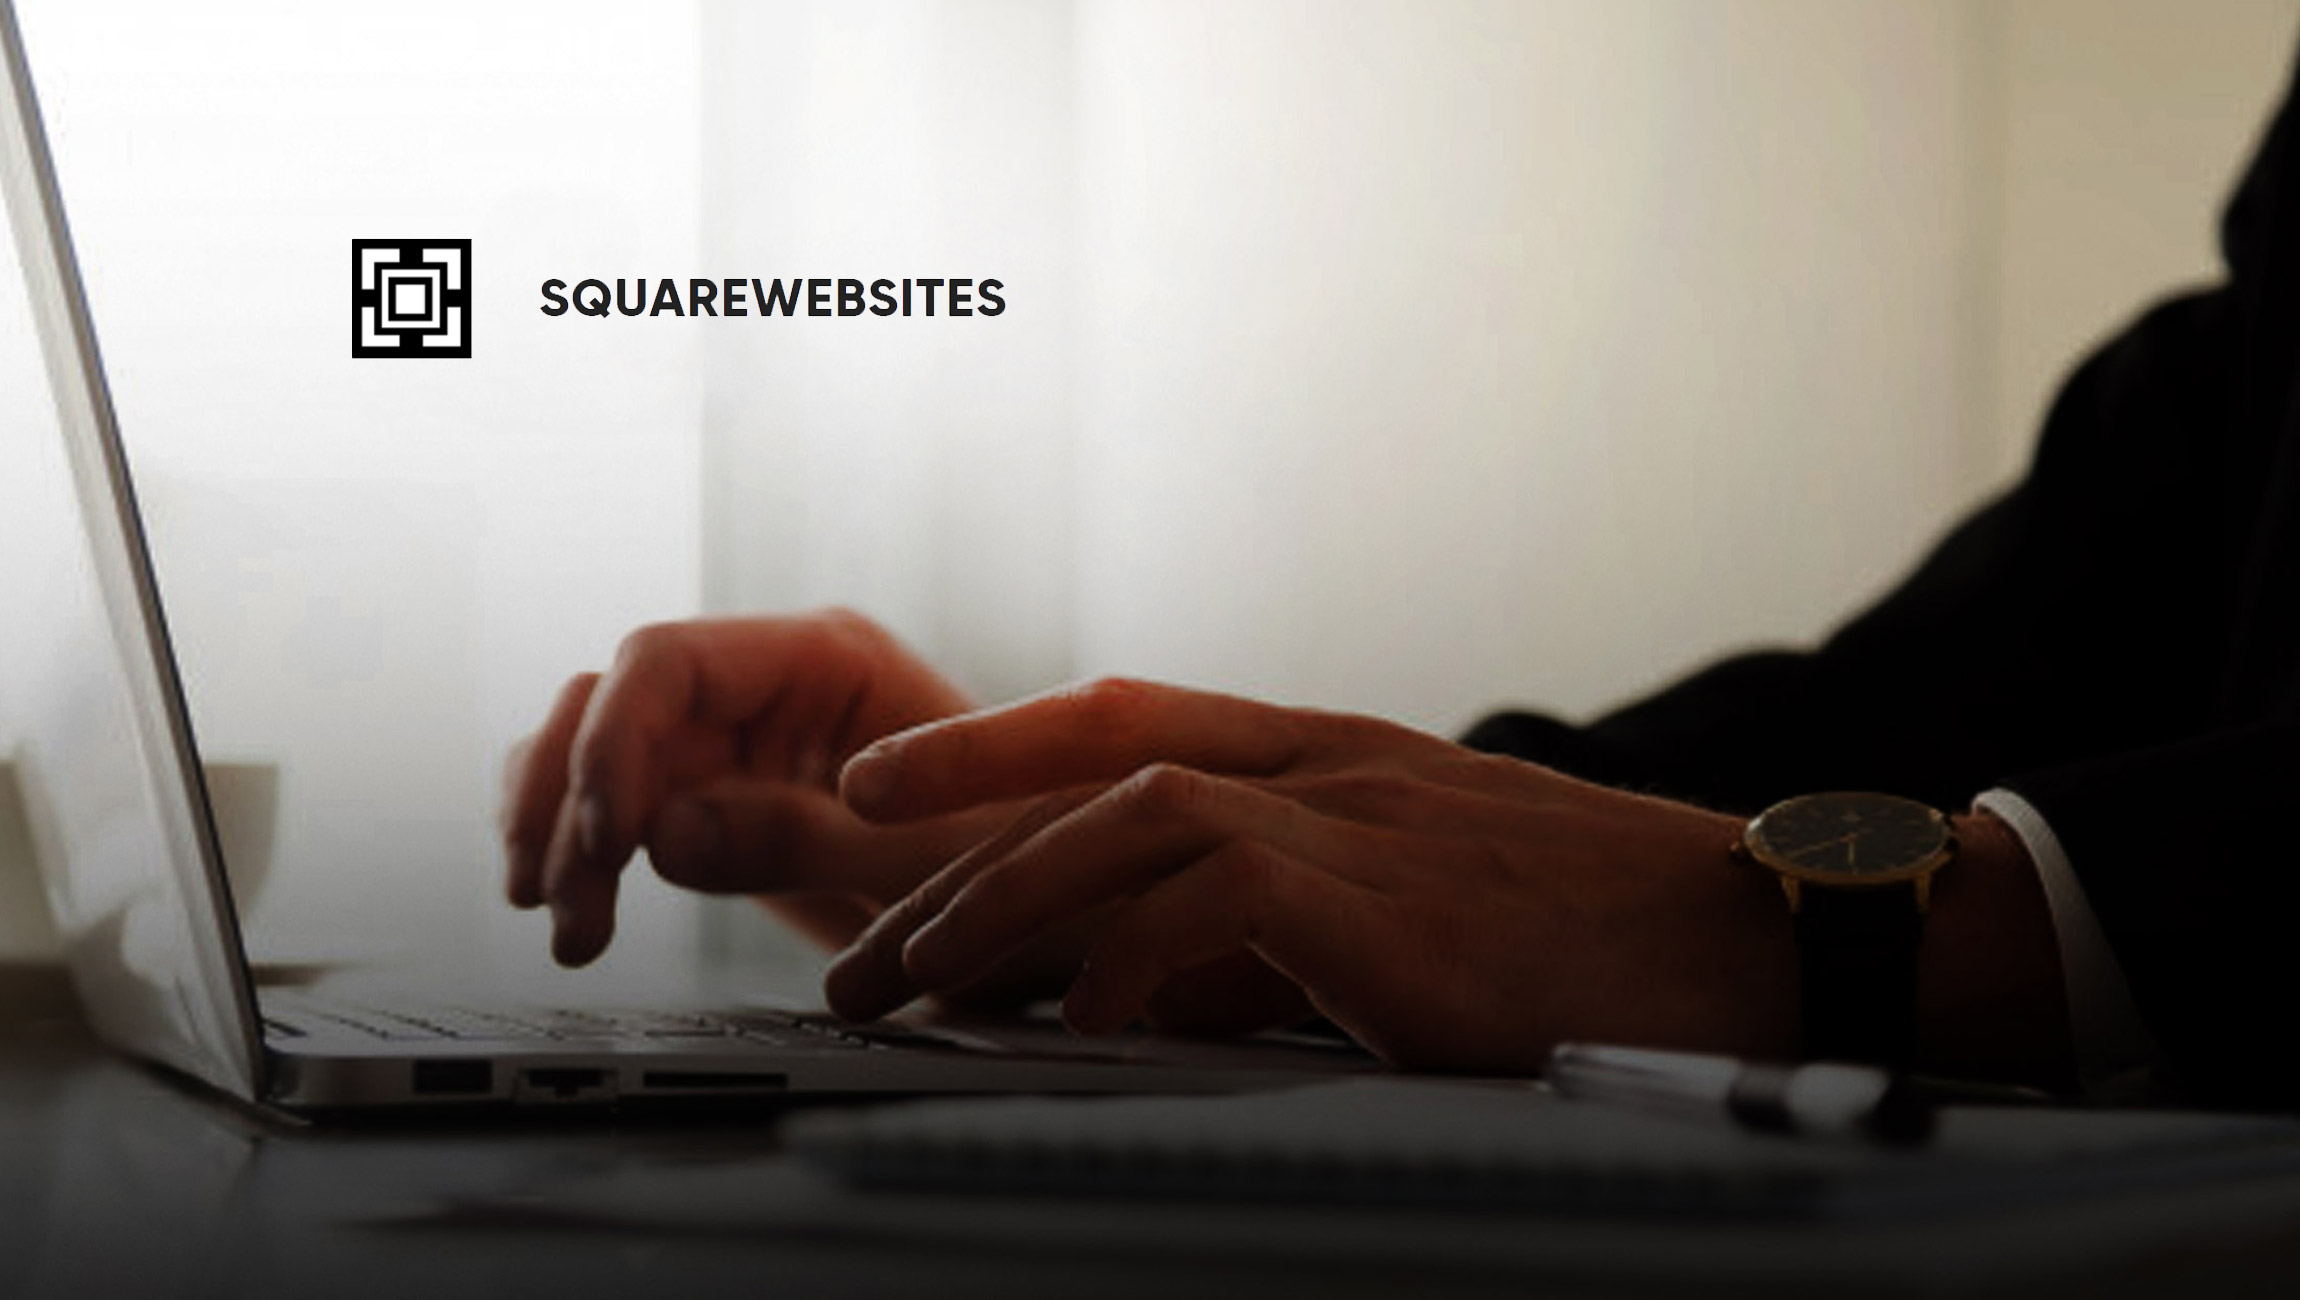 Squarespace Plugins Provider 'Square Websites' Announces Shift To Subscription-Based Business Model 1